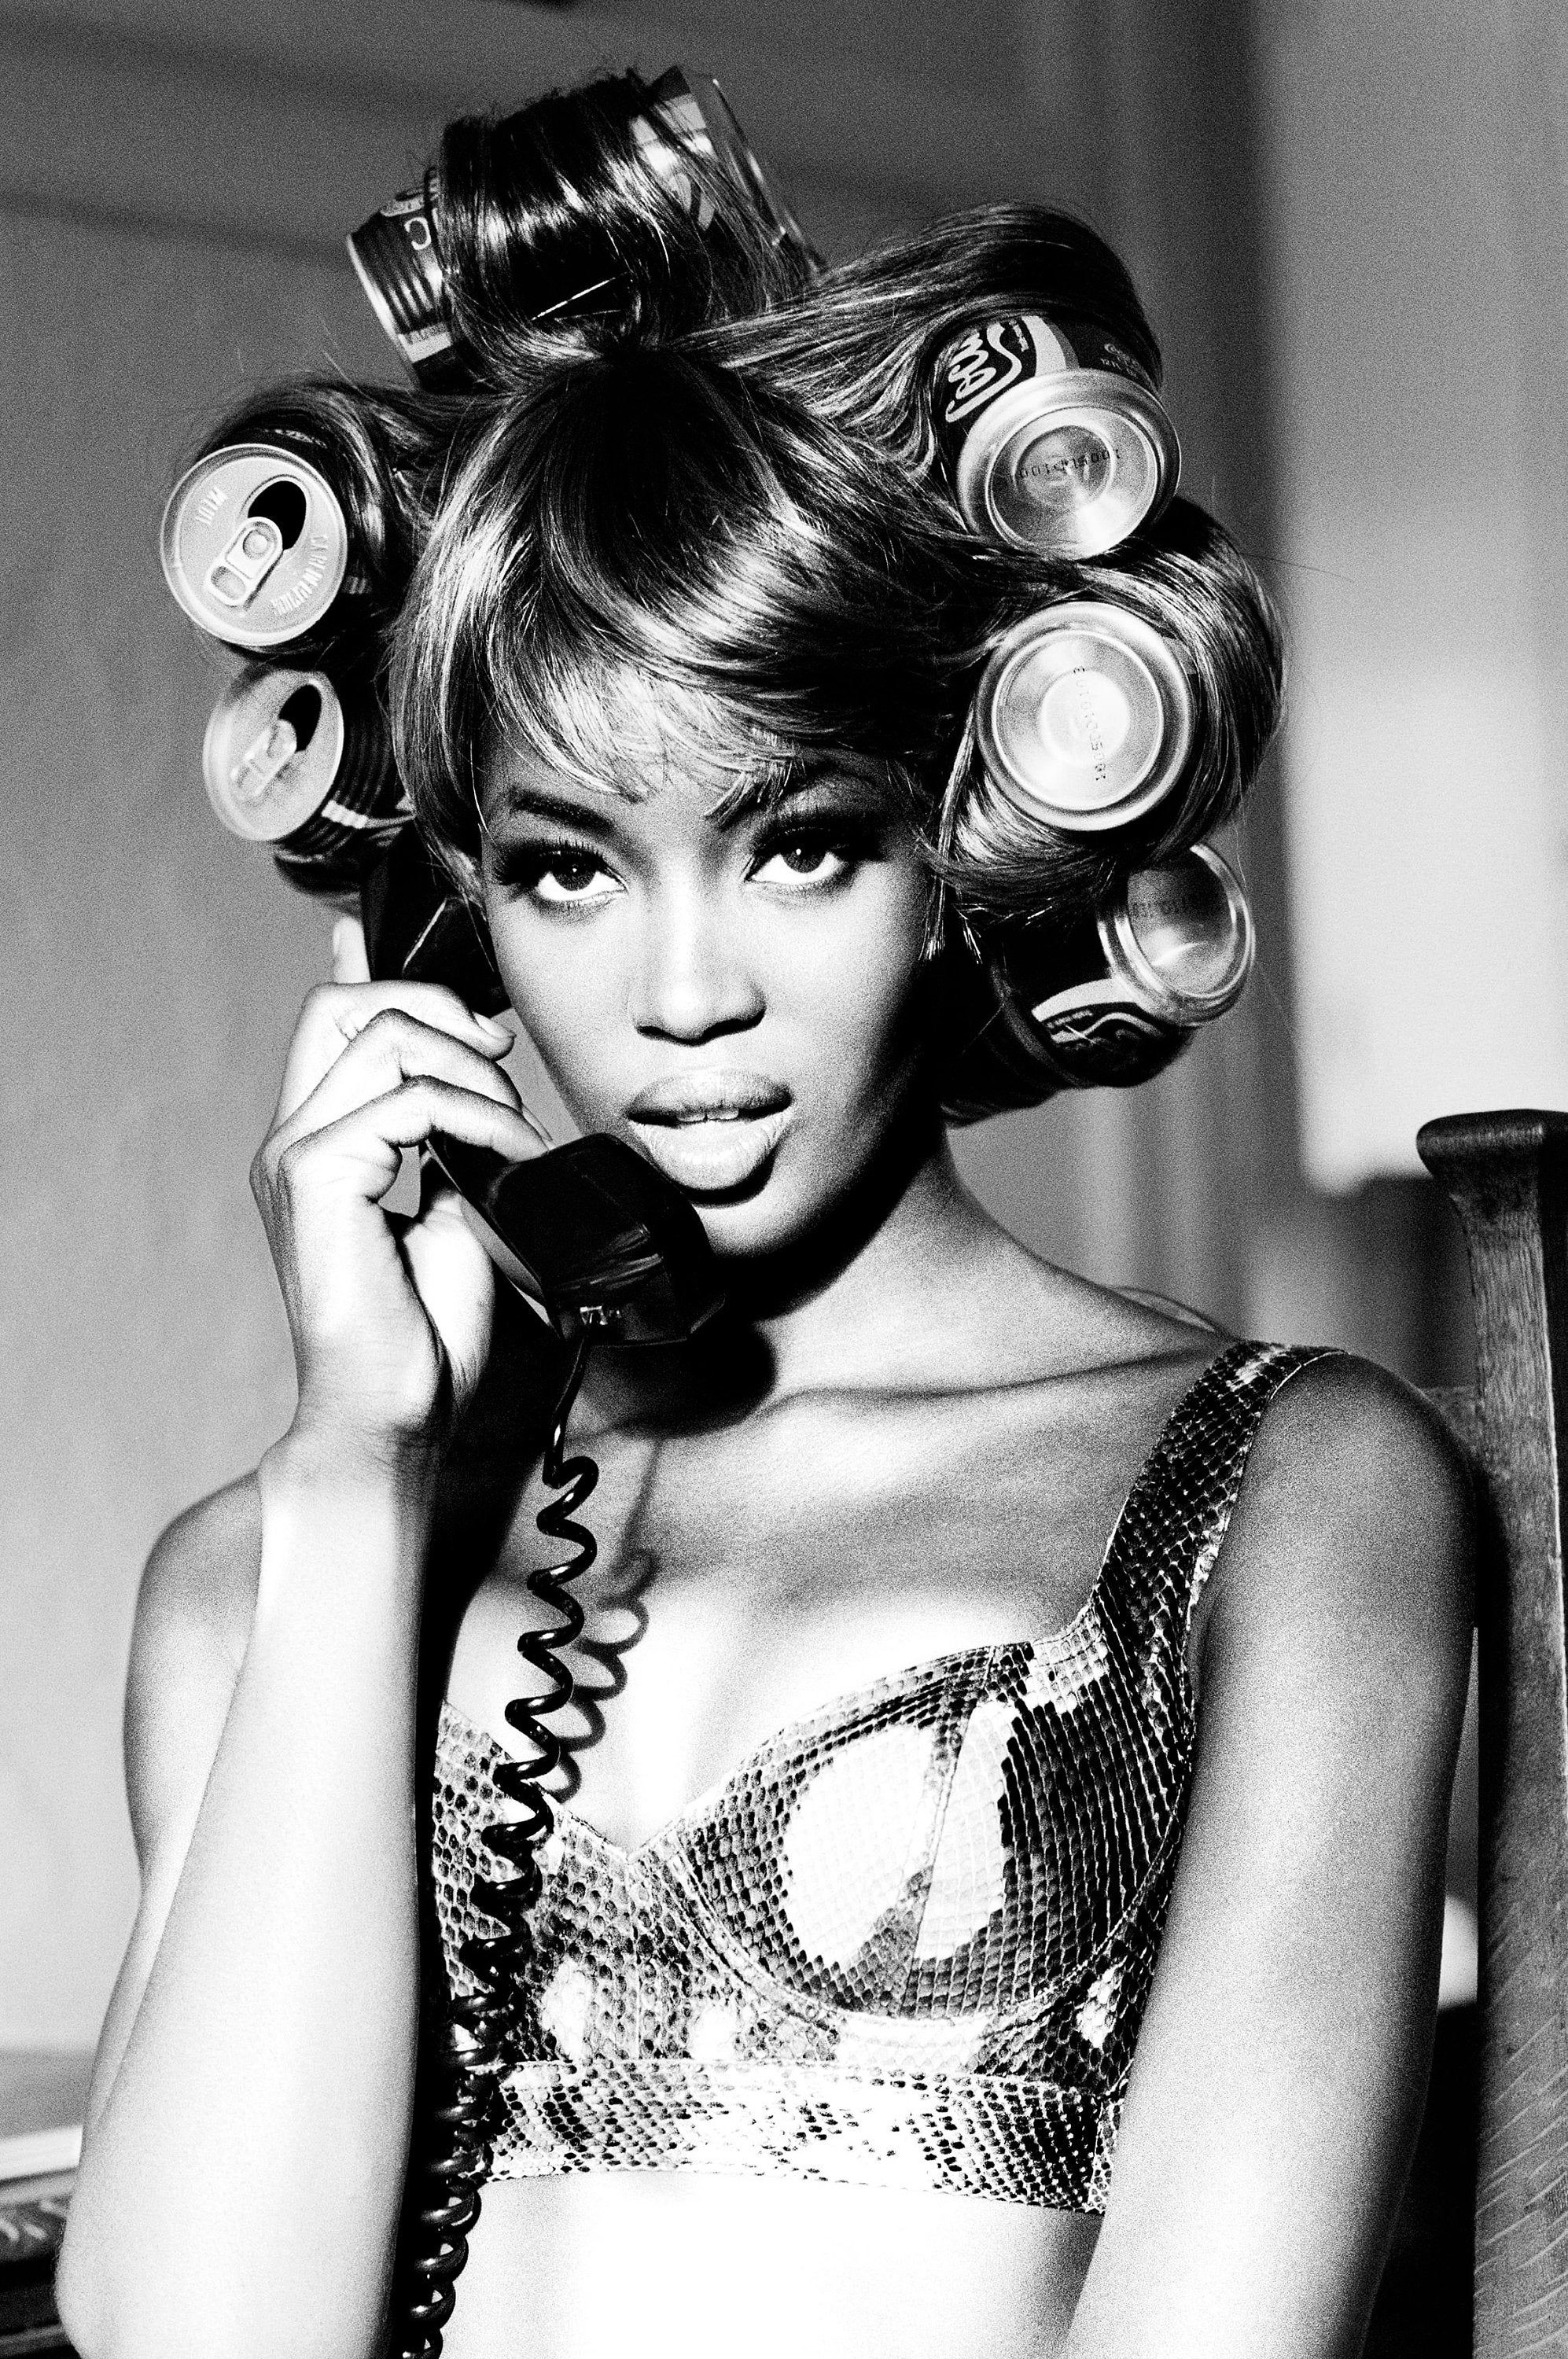 Naomi Campbell Poster, Supermodel, Actress Fashion High Quality Print, Modern Poster, Home Décor Wall Art Photography Framed Sizes A5/A4/A3